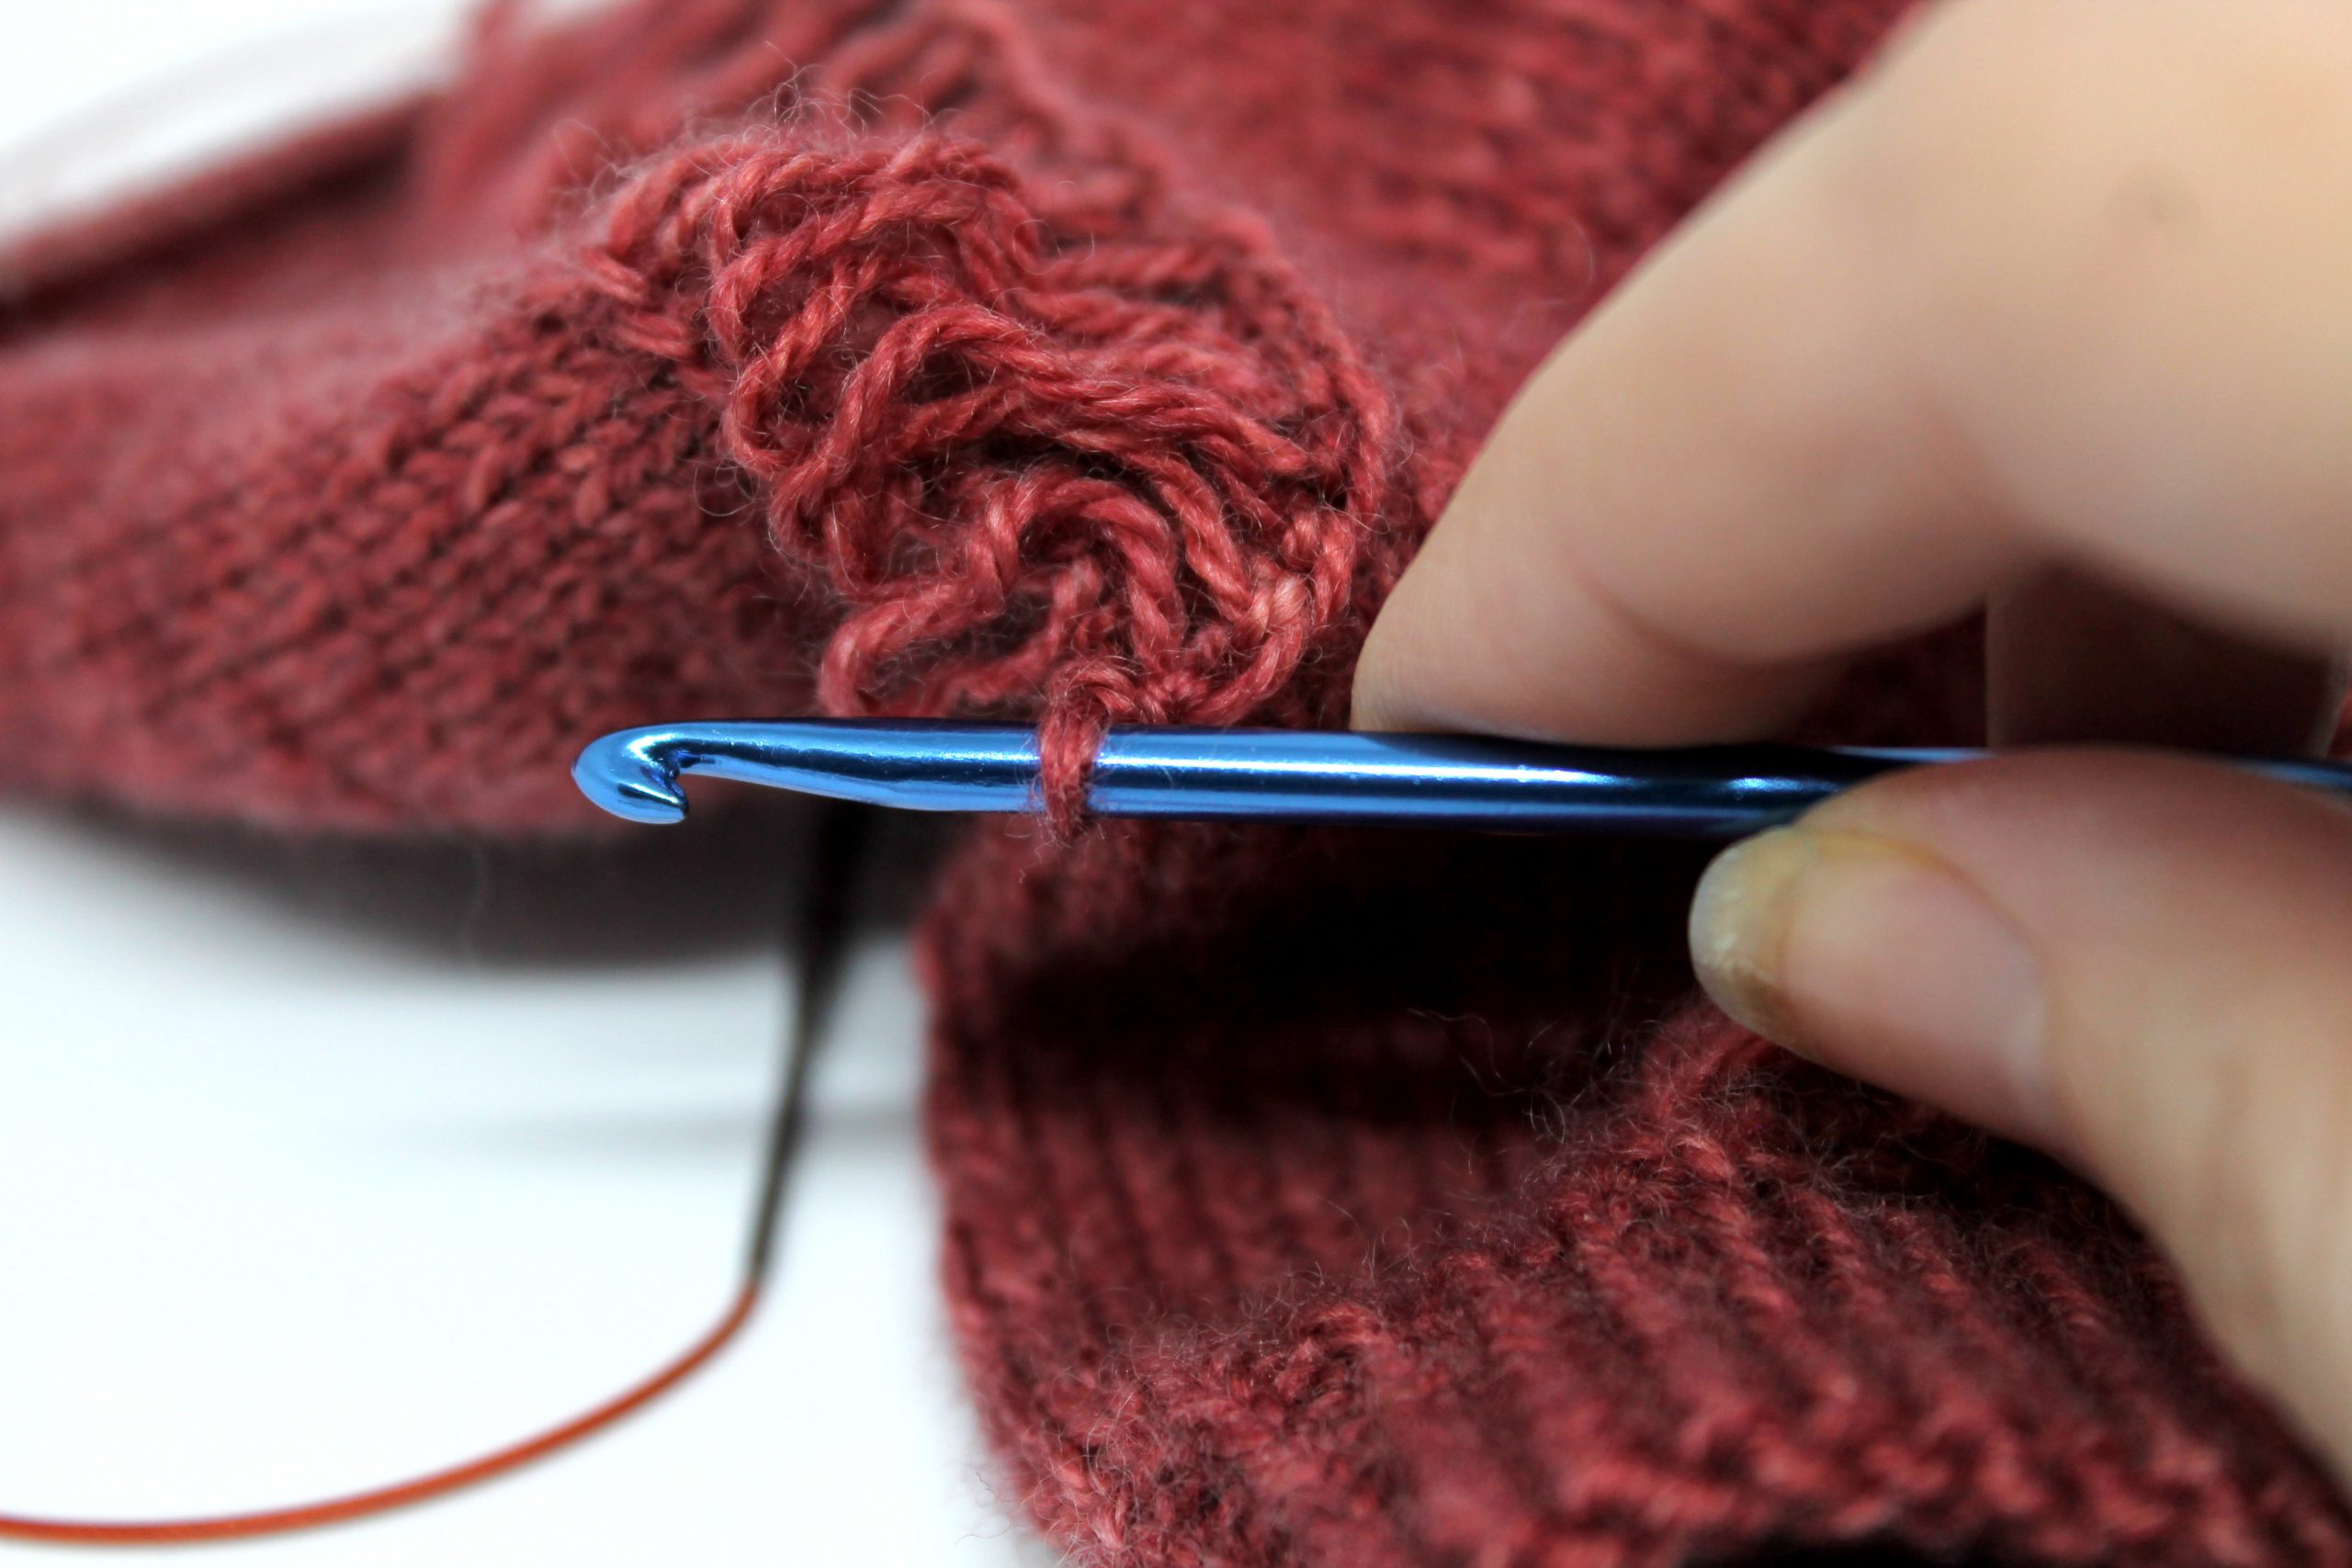 The stitch with the removable marker has now been place on a crochet hook, and the stitch marker removed. The laddered dropped stitches can still be seen at the back of the photo